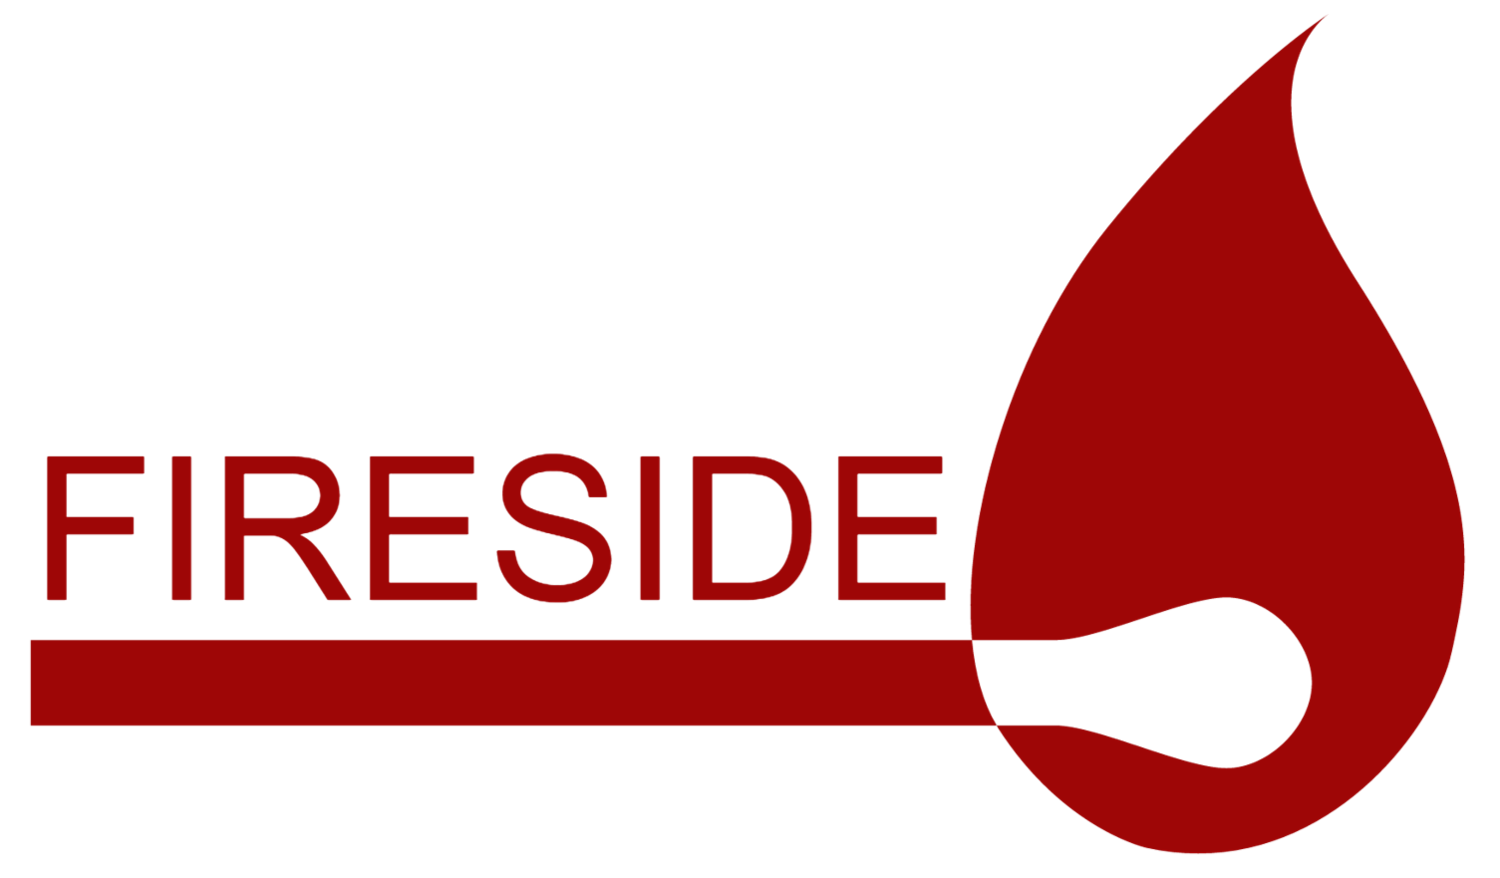 FIRESIDE DISTRIBUTORS INC.